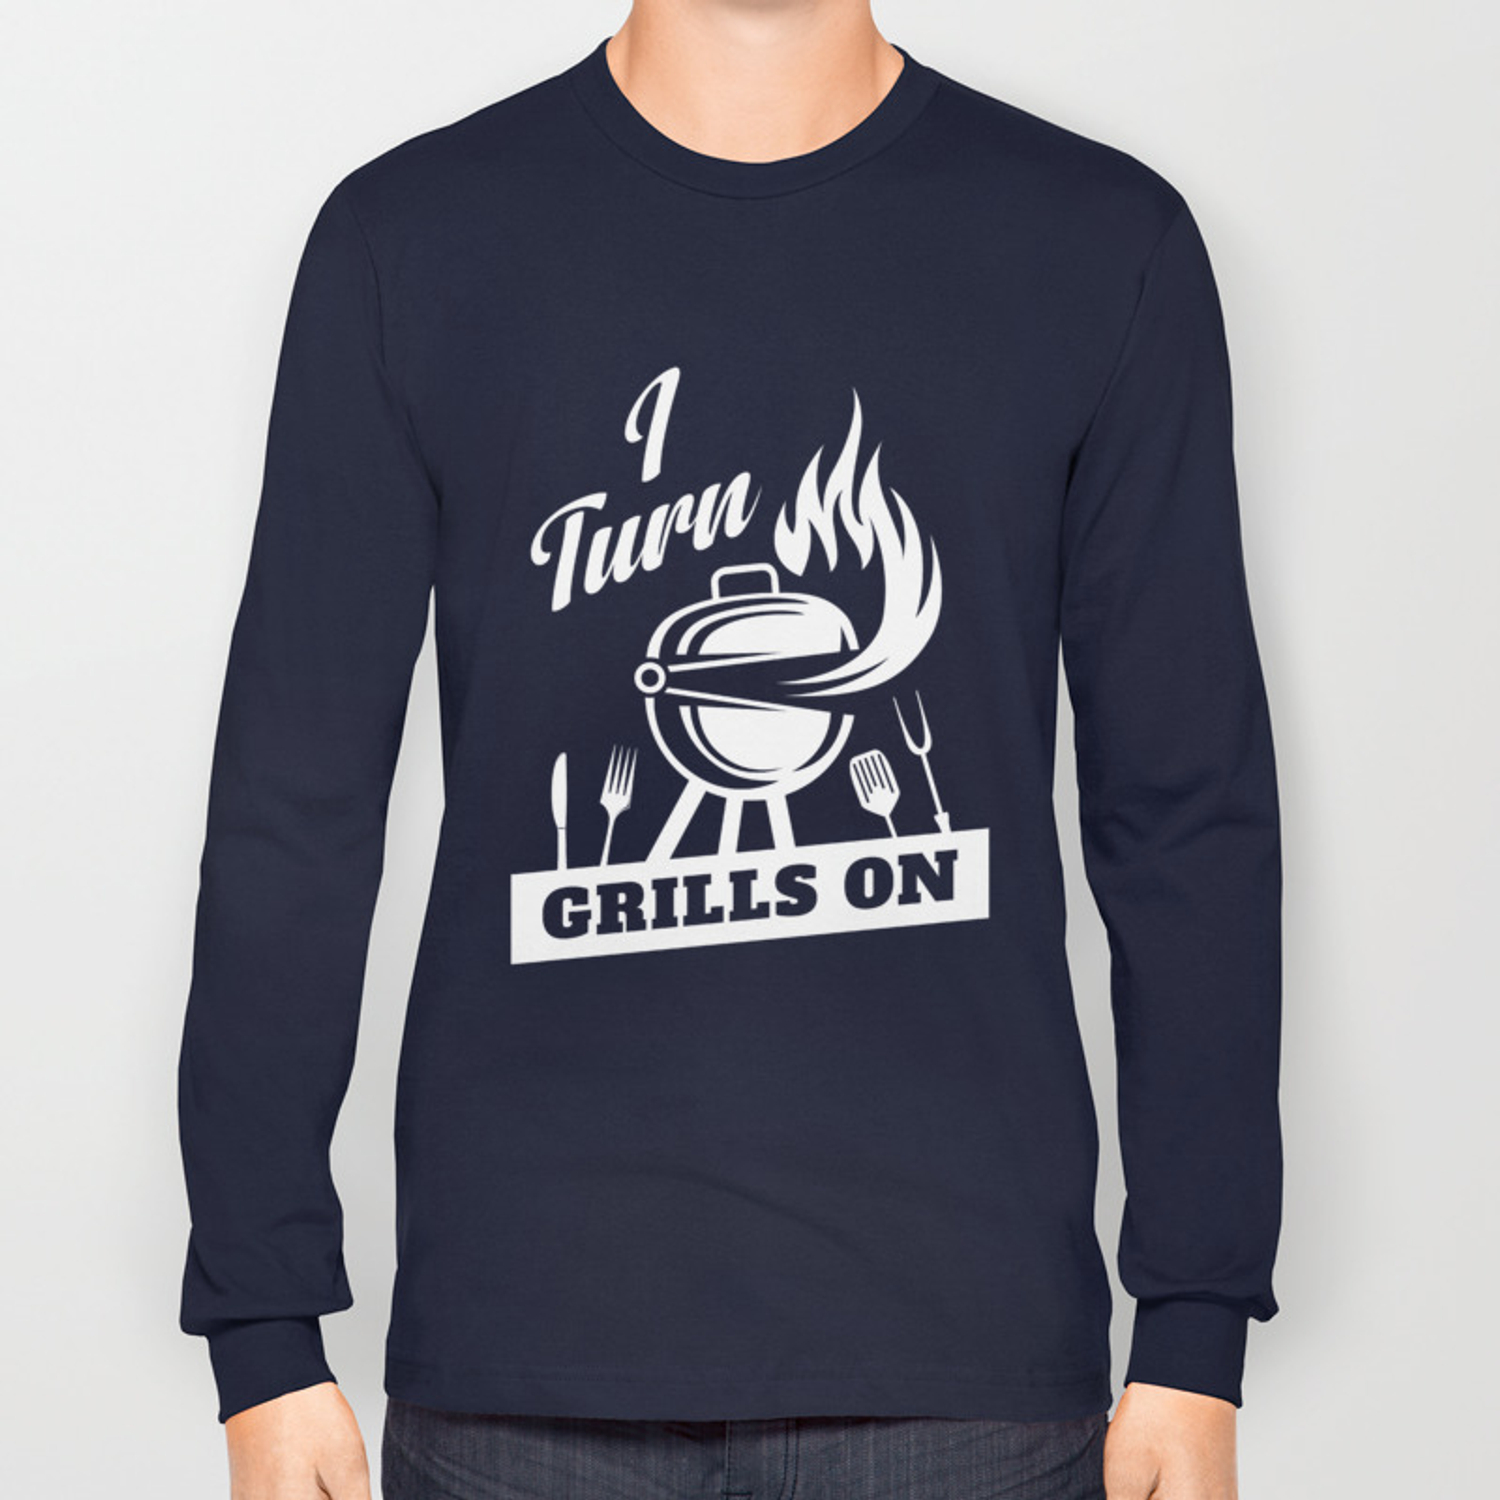 88c5861a16 I Turn Grills On TShirt Long Sleeve T-shirt by joseplucia | Society6